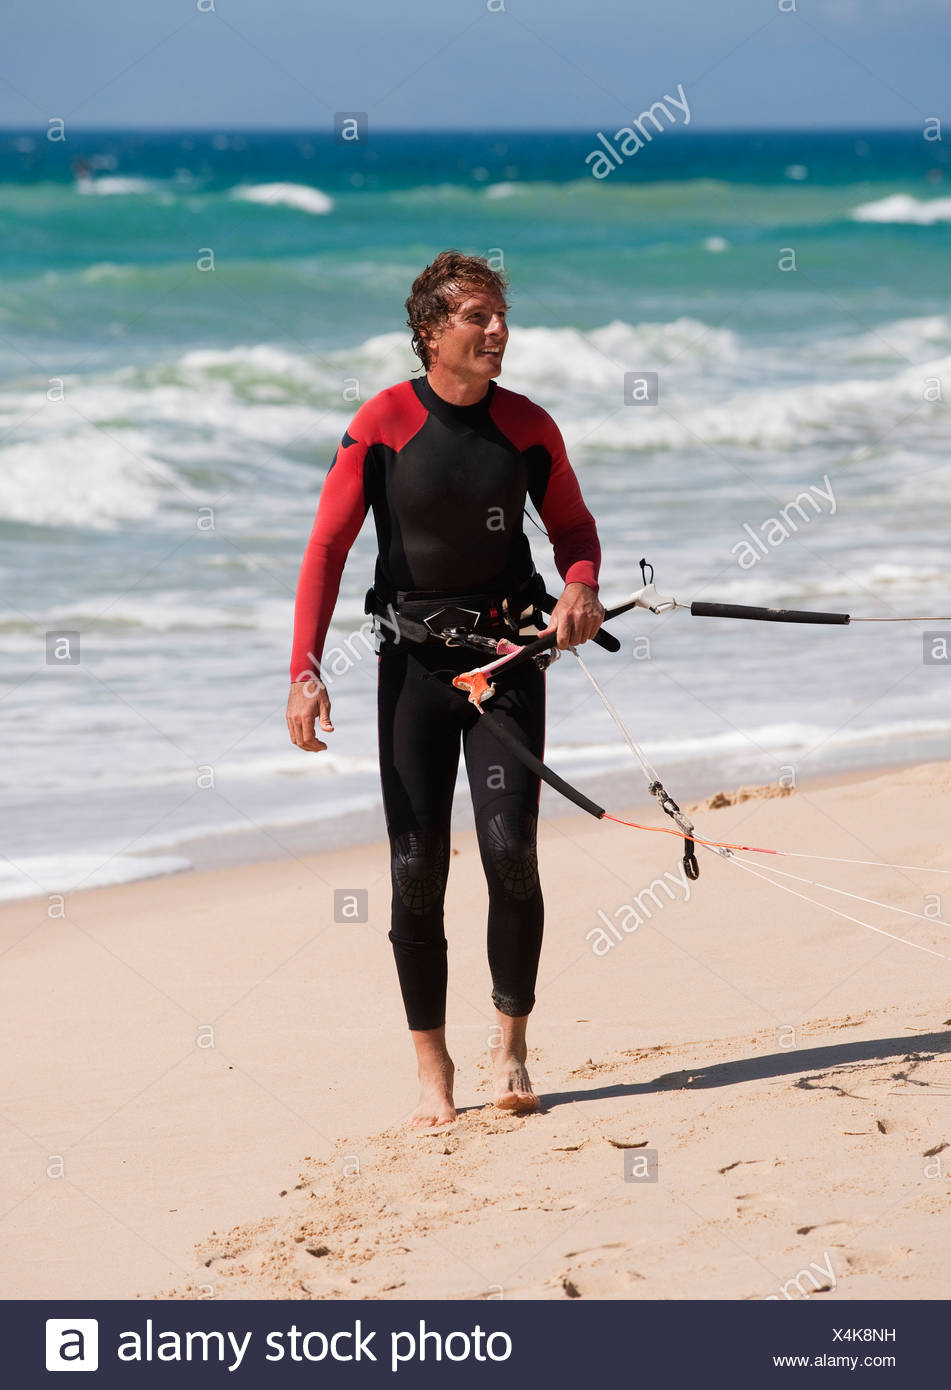 tarifa, cadiz, andalusia, spain; a man on punta paloma beach wearing a wetsuit and carrying kitesurfing equipment Stock Photo